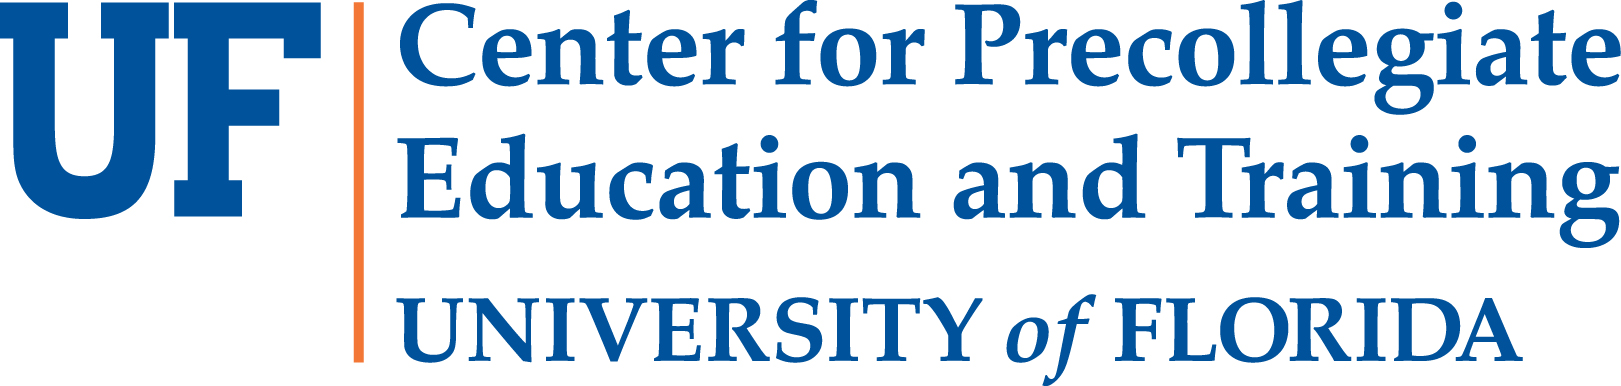 University of Florida Center for Precollegiate Education and Training logo